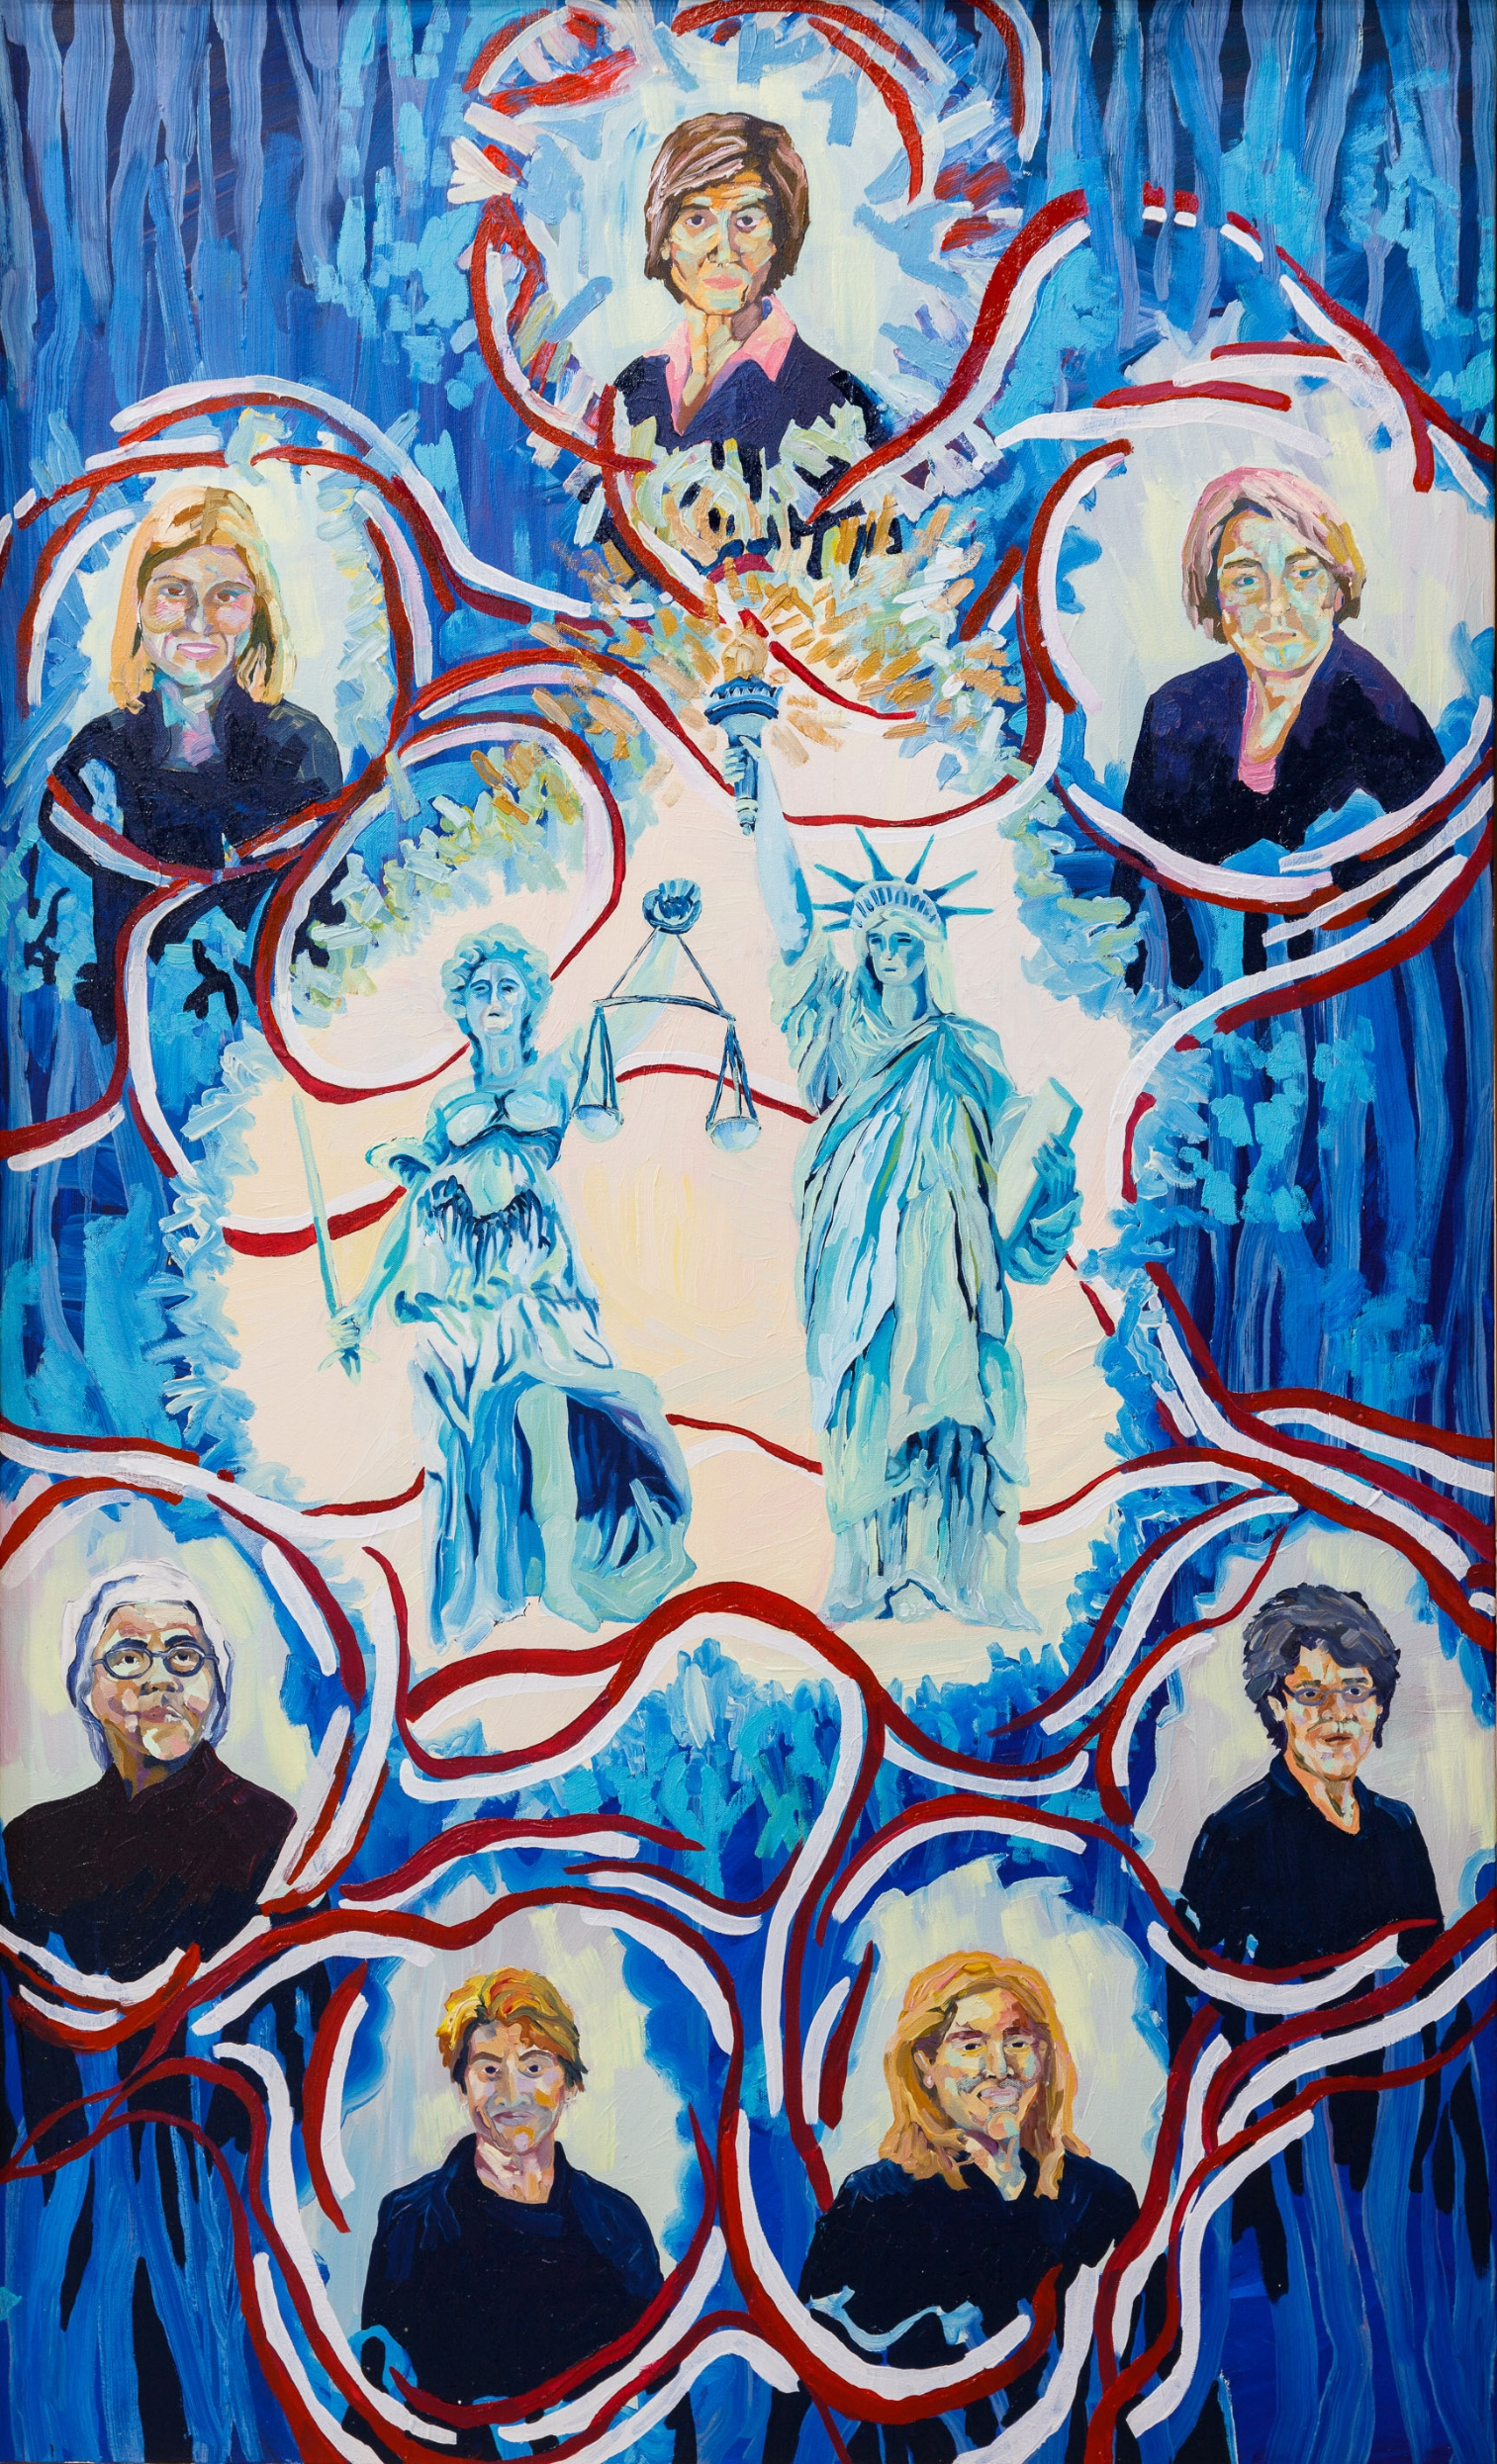 Liberty with Justice-Yates,Healey,Swanson,Dein, Donnelly,Burroughs,Brinkema